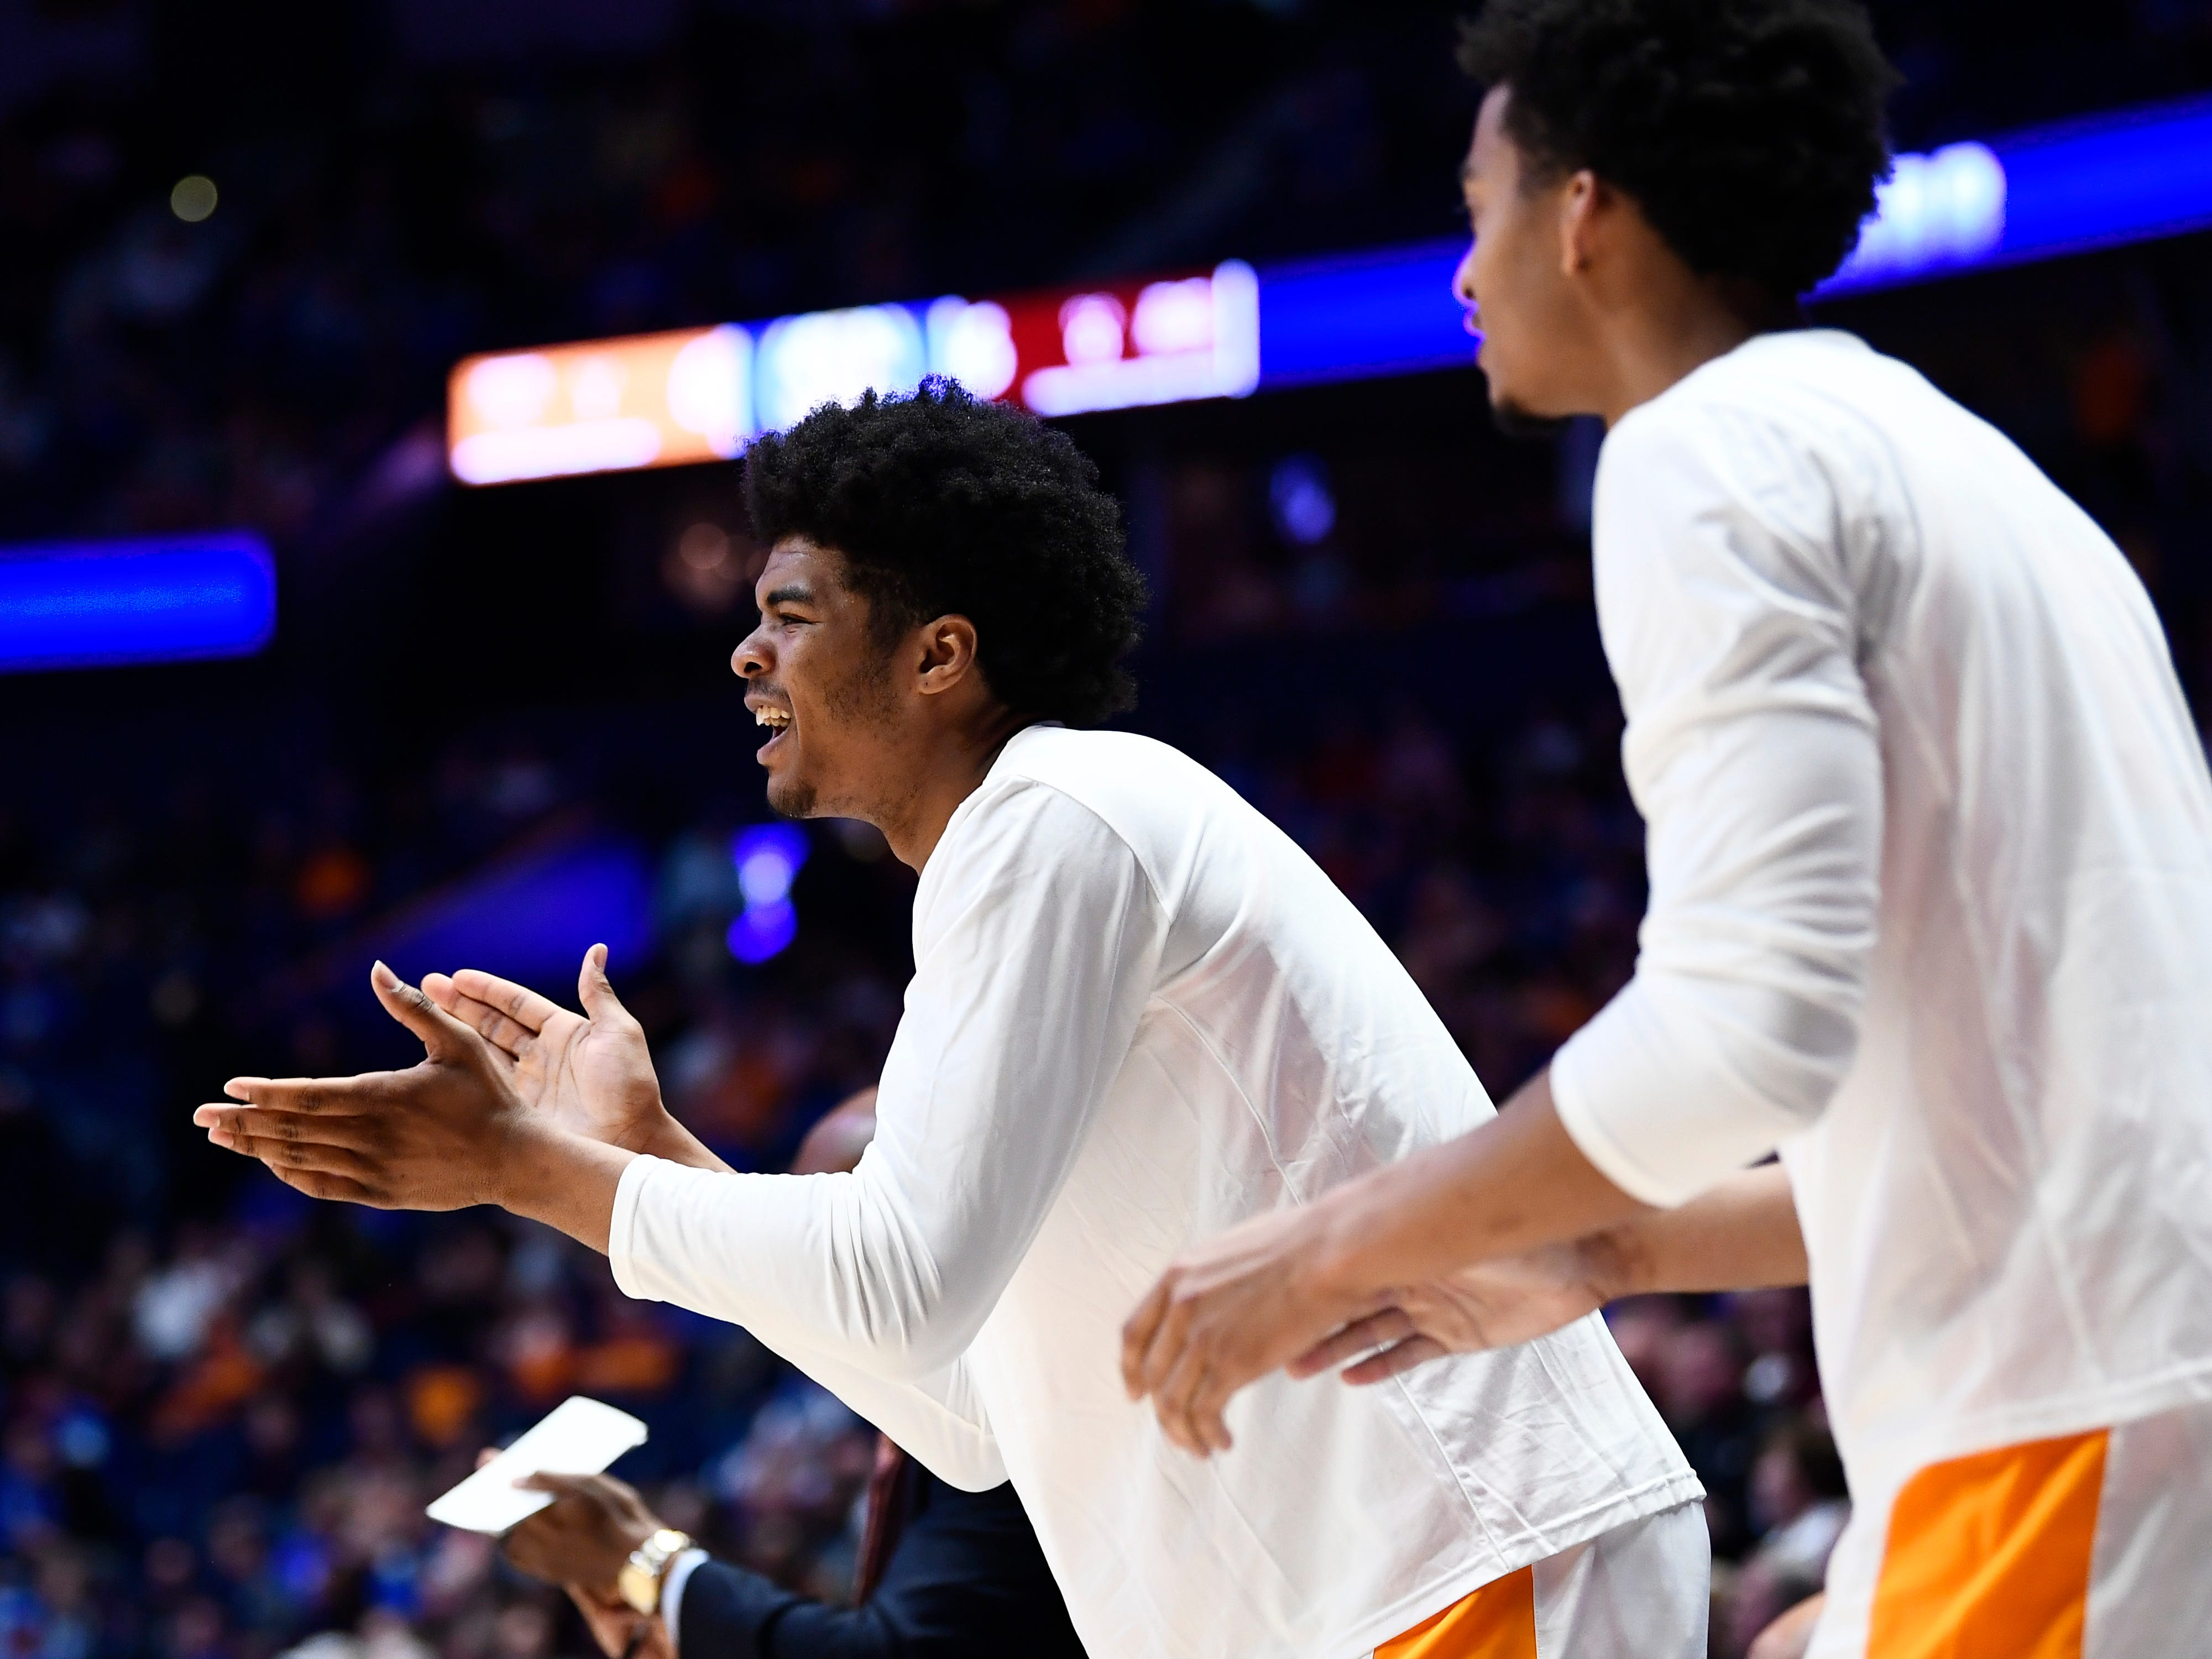 Tennessee forward Derrick Walker (15) cheers his teammates during the first half of the SEC Men's Basketball Tournament game against Mississippi State at Bridgestone Arena in Nashville, Tenn., Friday, March 15, 2019.